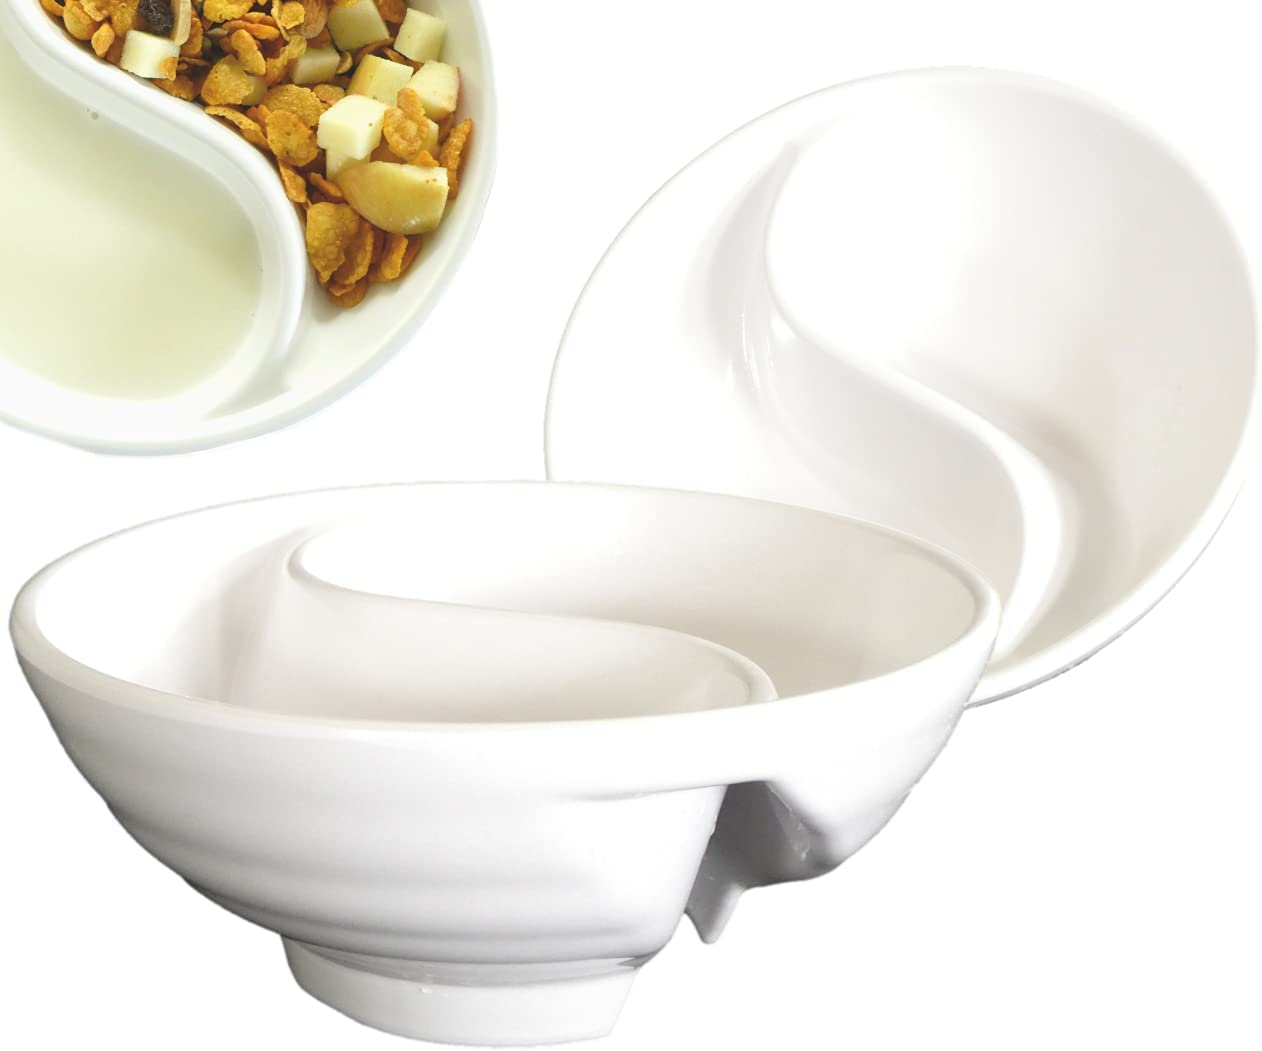 Never Soggy Cereal Bowl. White x2. Divided. Cereal Bowl Separated. Unbreakable Melamine. Two sided bowl. Anti Soggy. Separate. Ideal for Snack And Salsa. By Vallenwood.